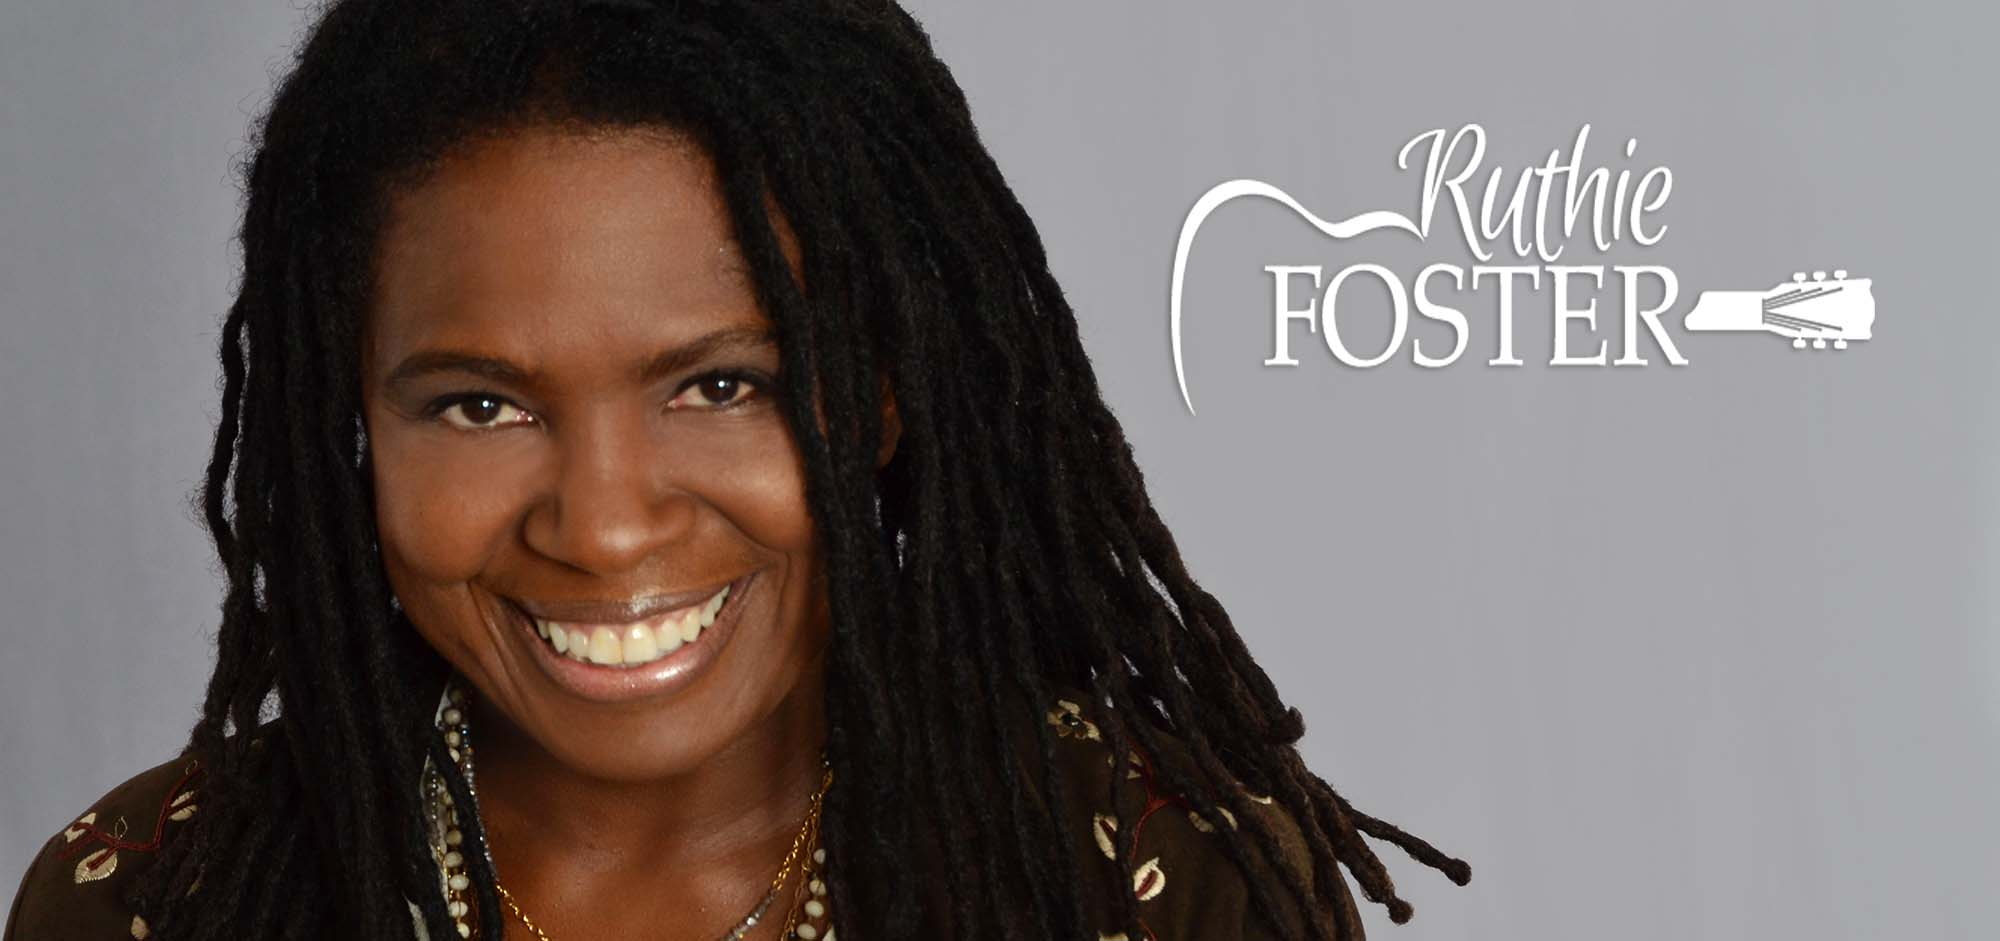 Ruthie Foster at Freedom Hall